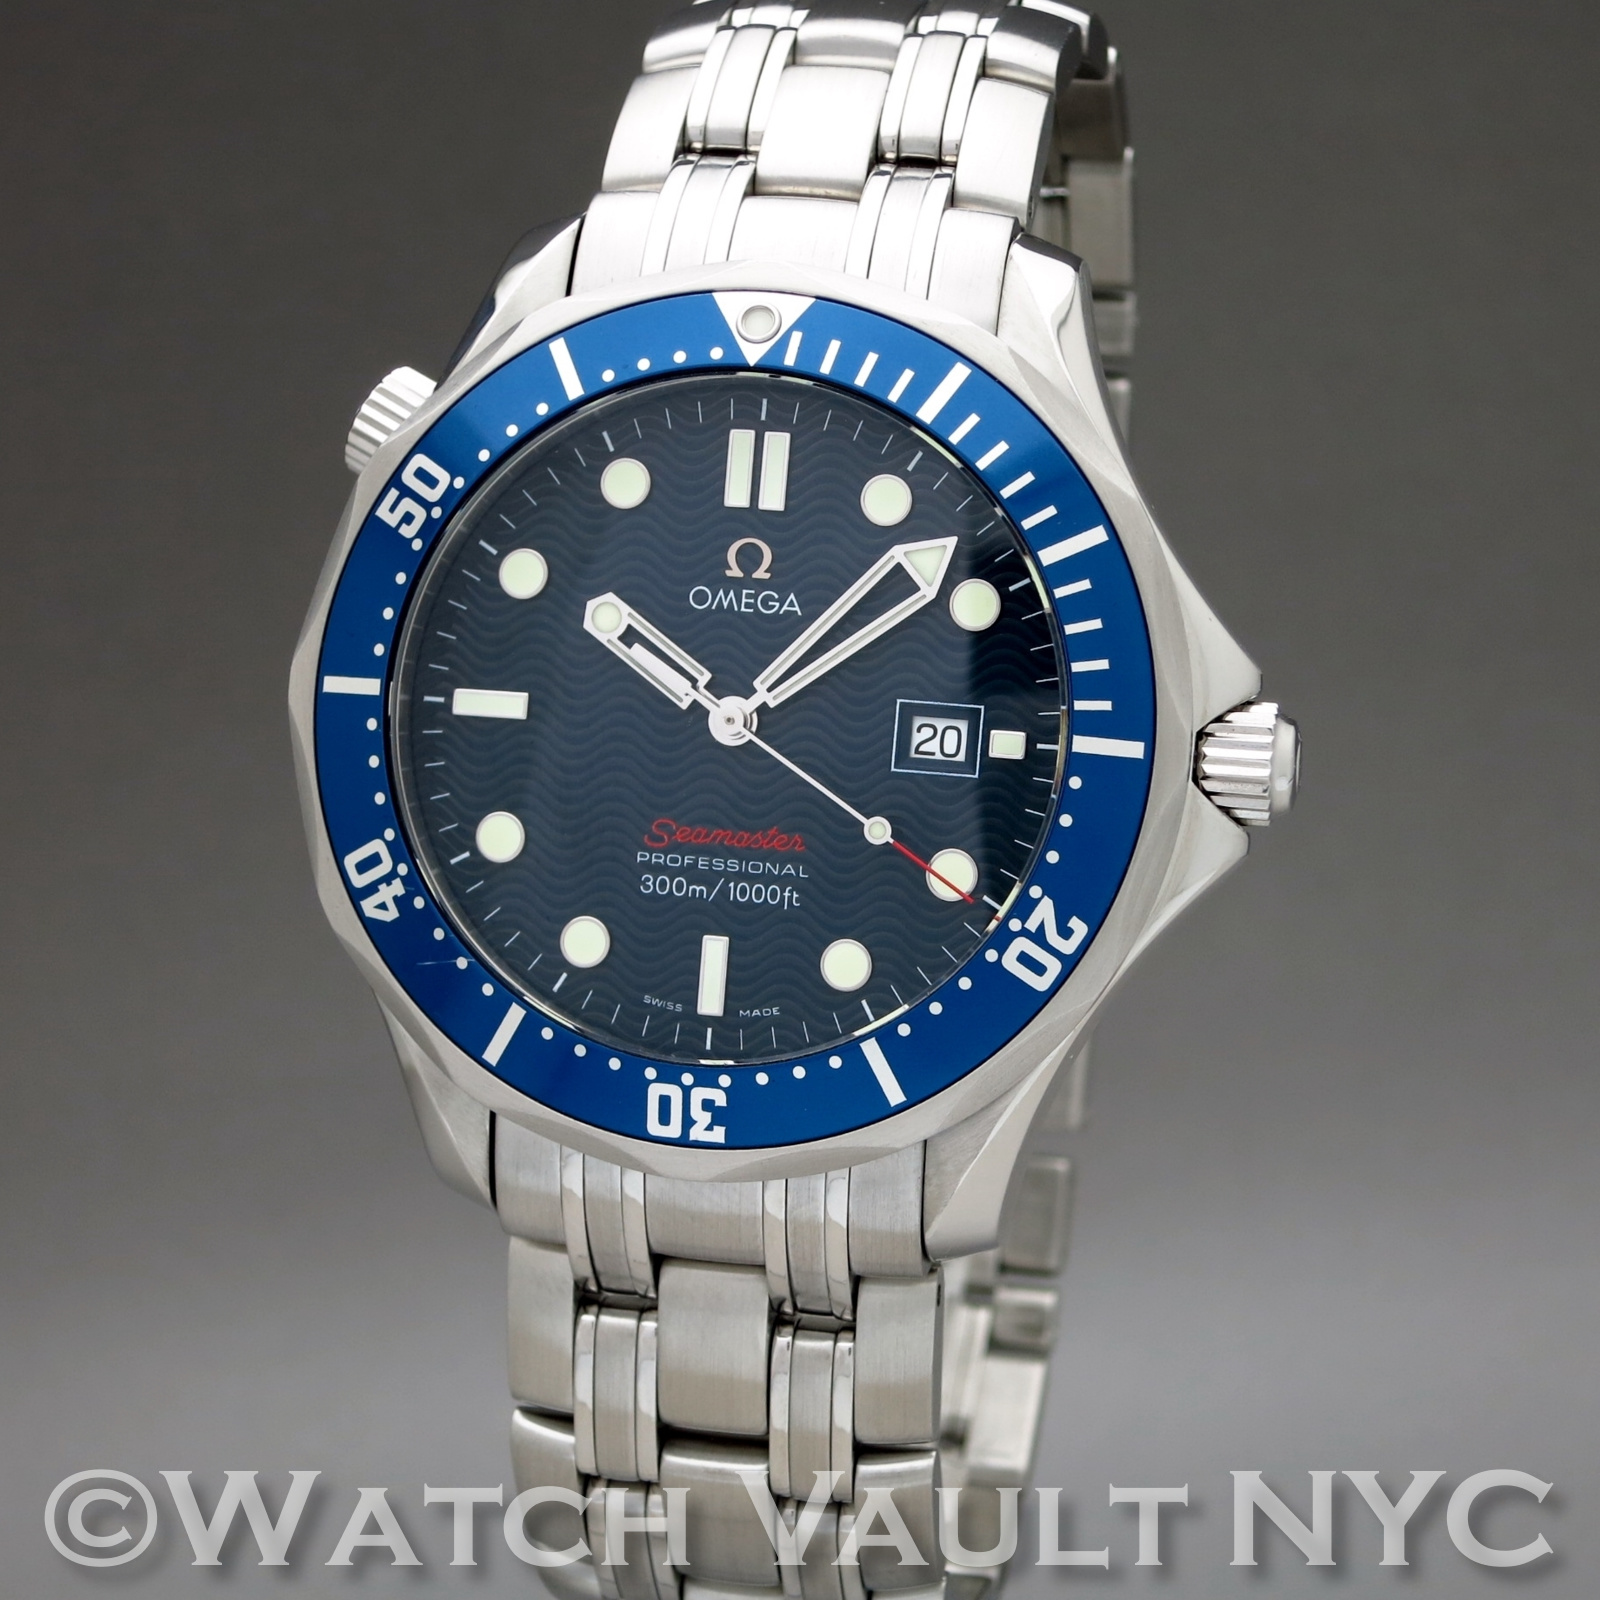 Omega seamaster professional james bond 300m 41mm quartz for Omega seamaster professional